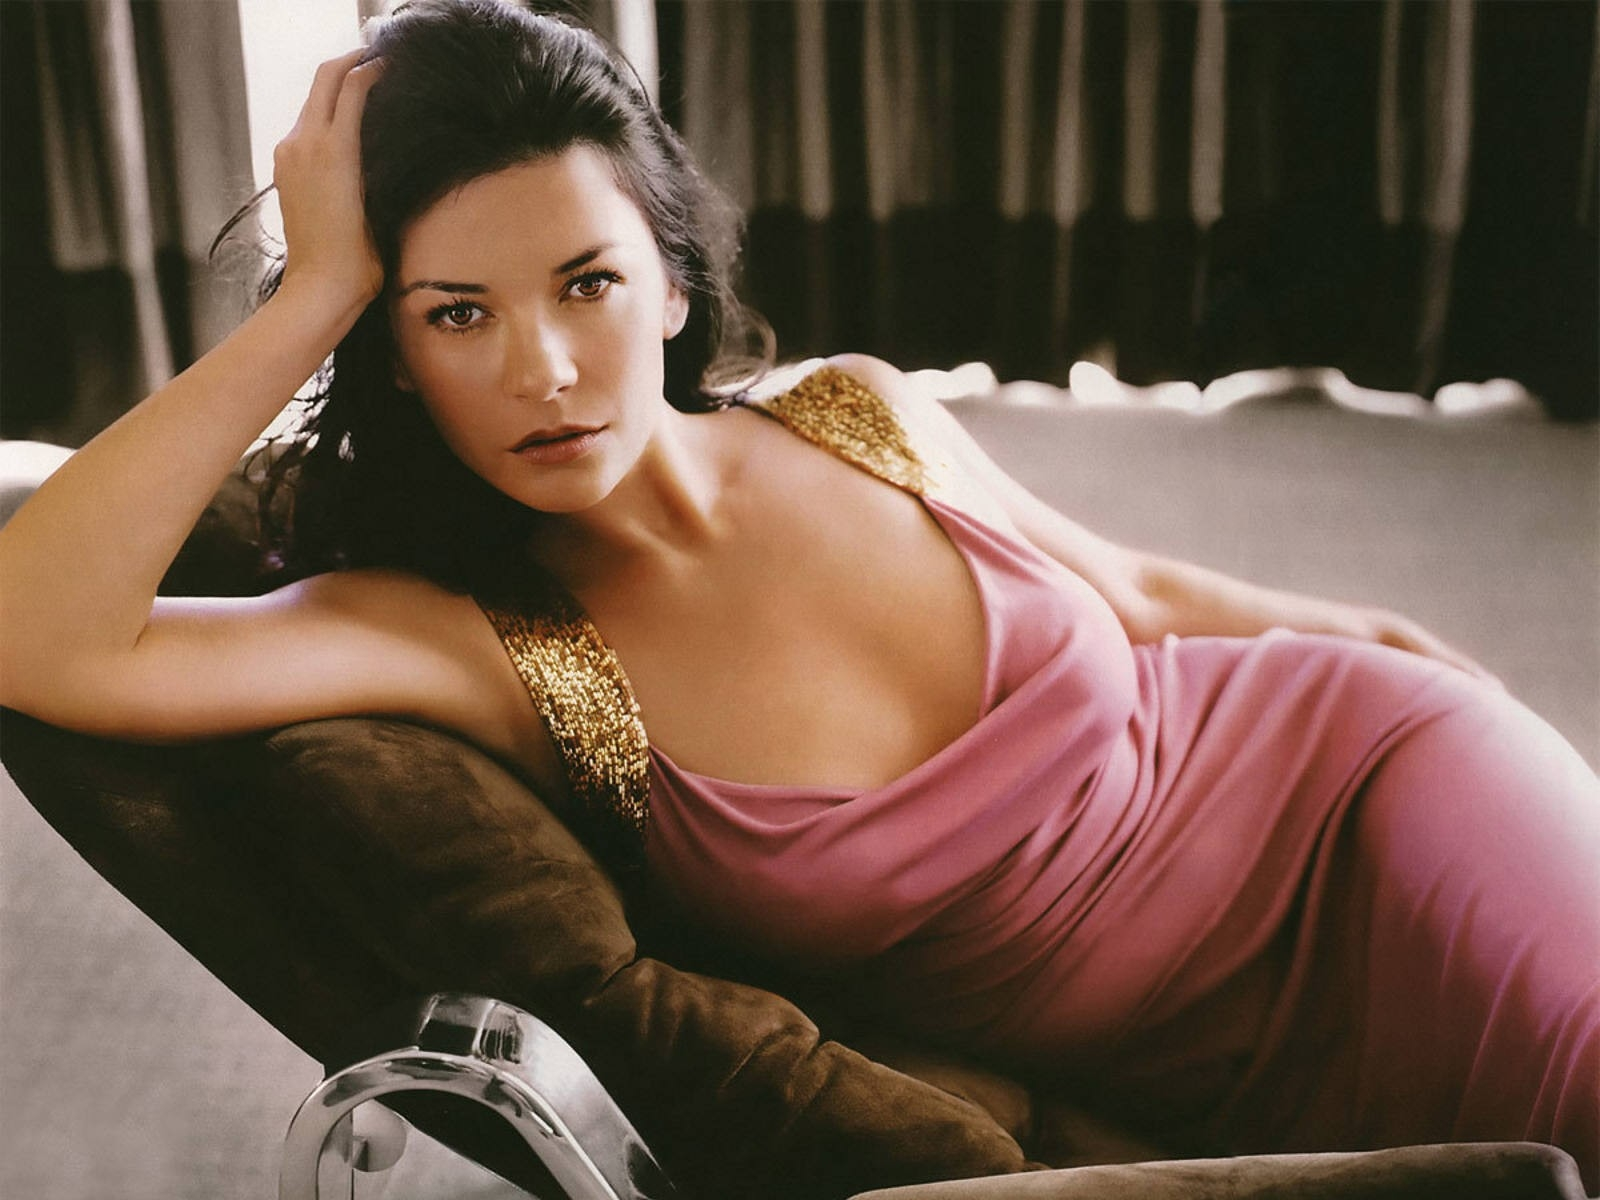 Wallpaper di Catherine Zeta-Jones in rosa